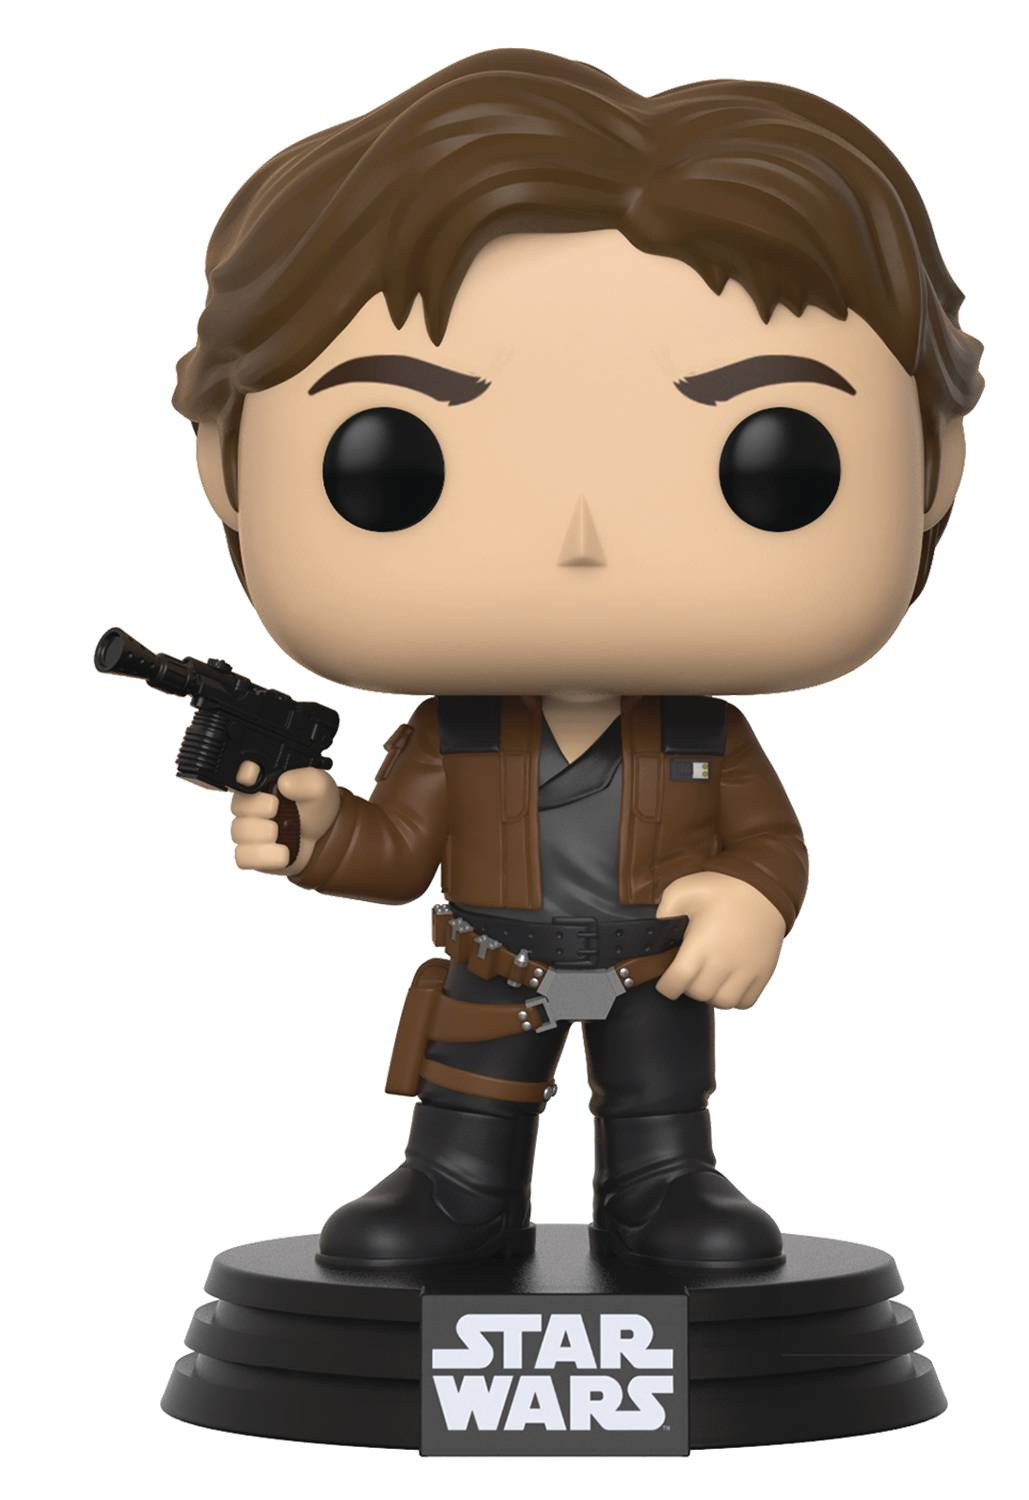 POP STAR WARS SOLO W1 HAN SOLO VINYL FIGURE